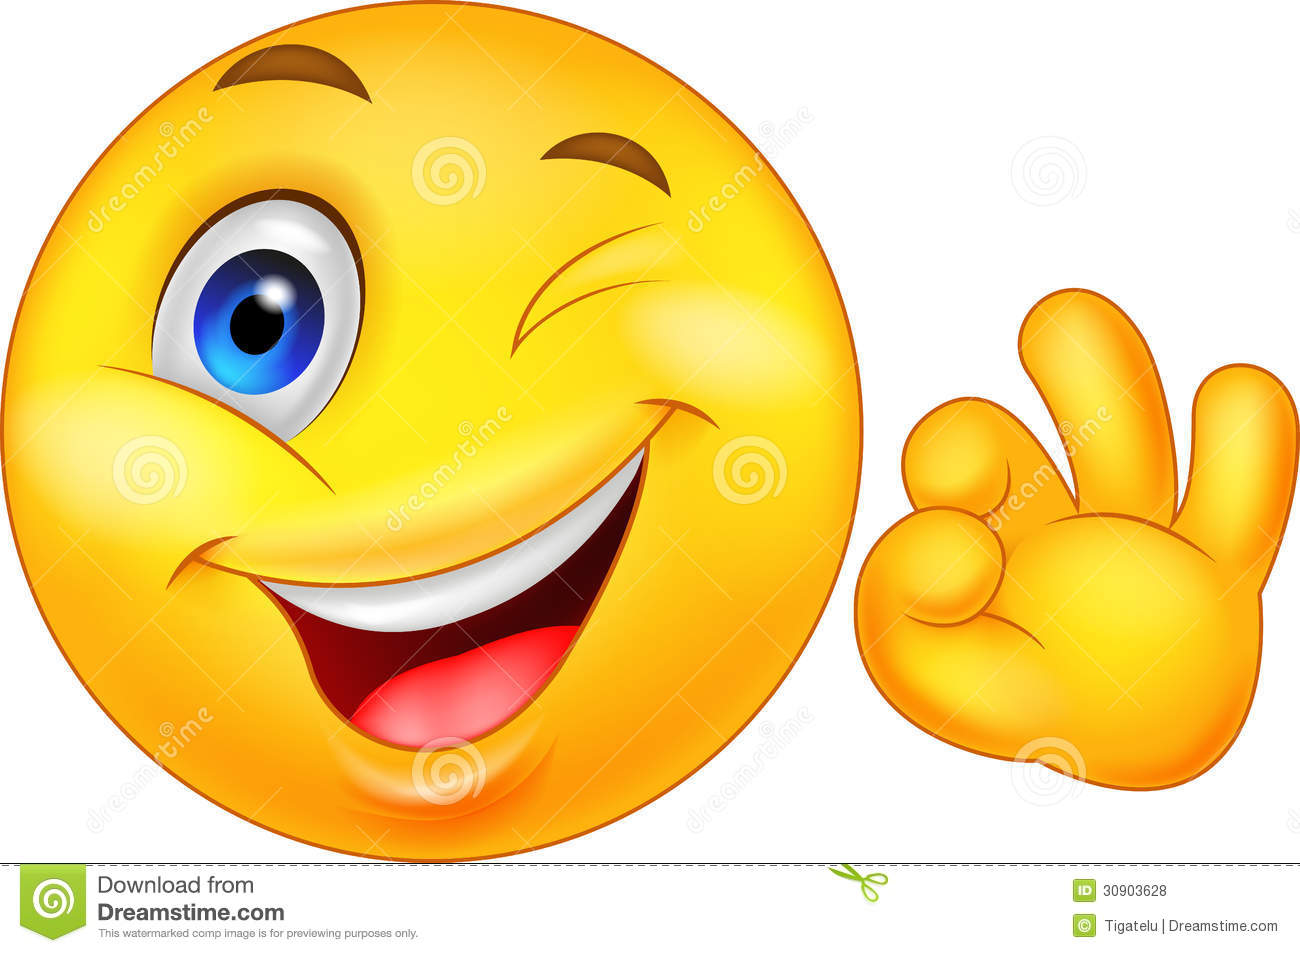 Writing Smiley Face Smiley emoticon with ok sign